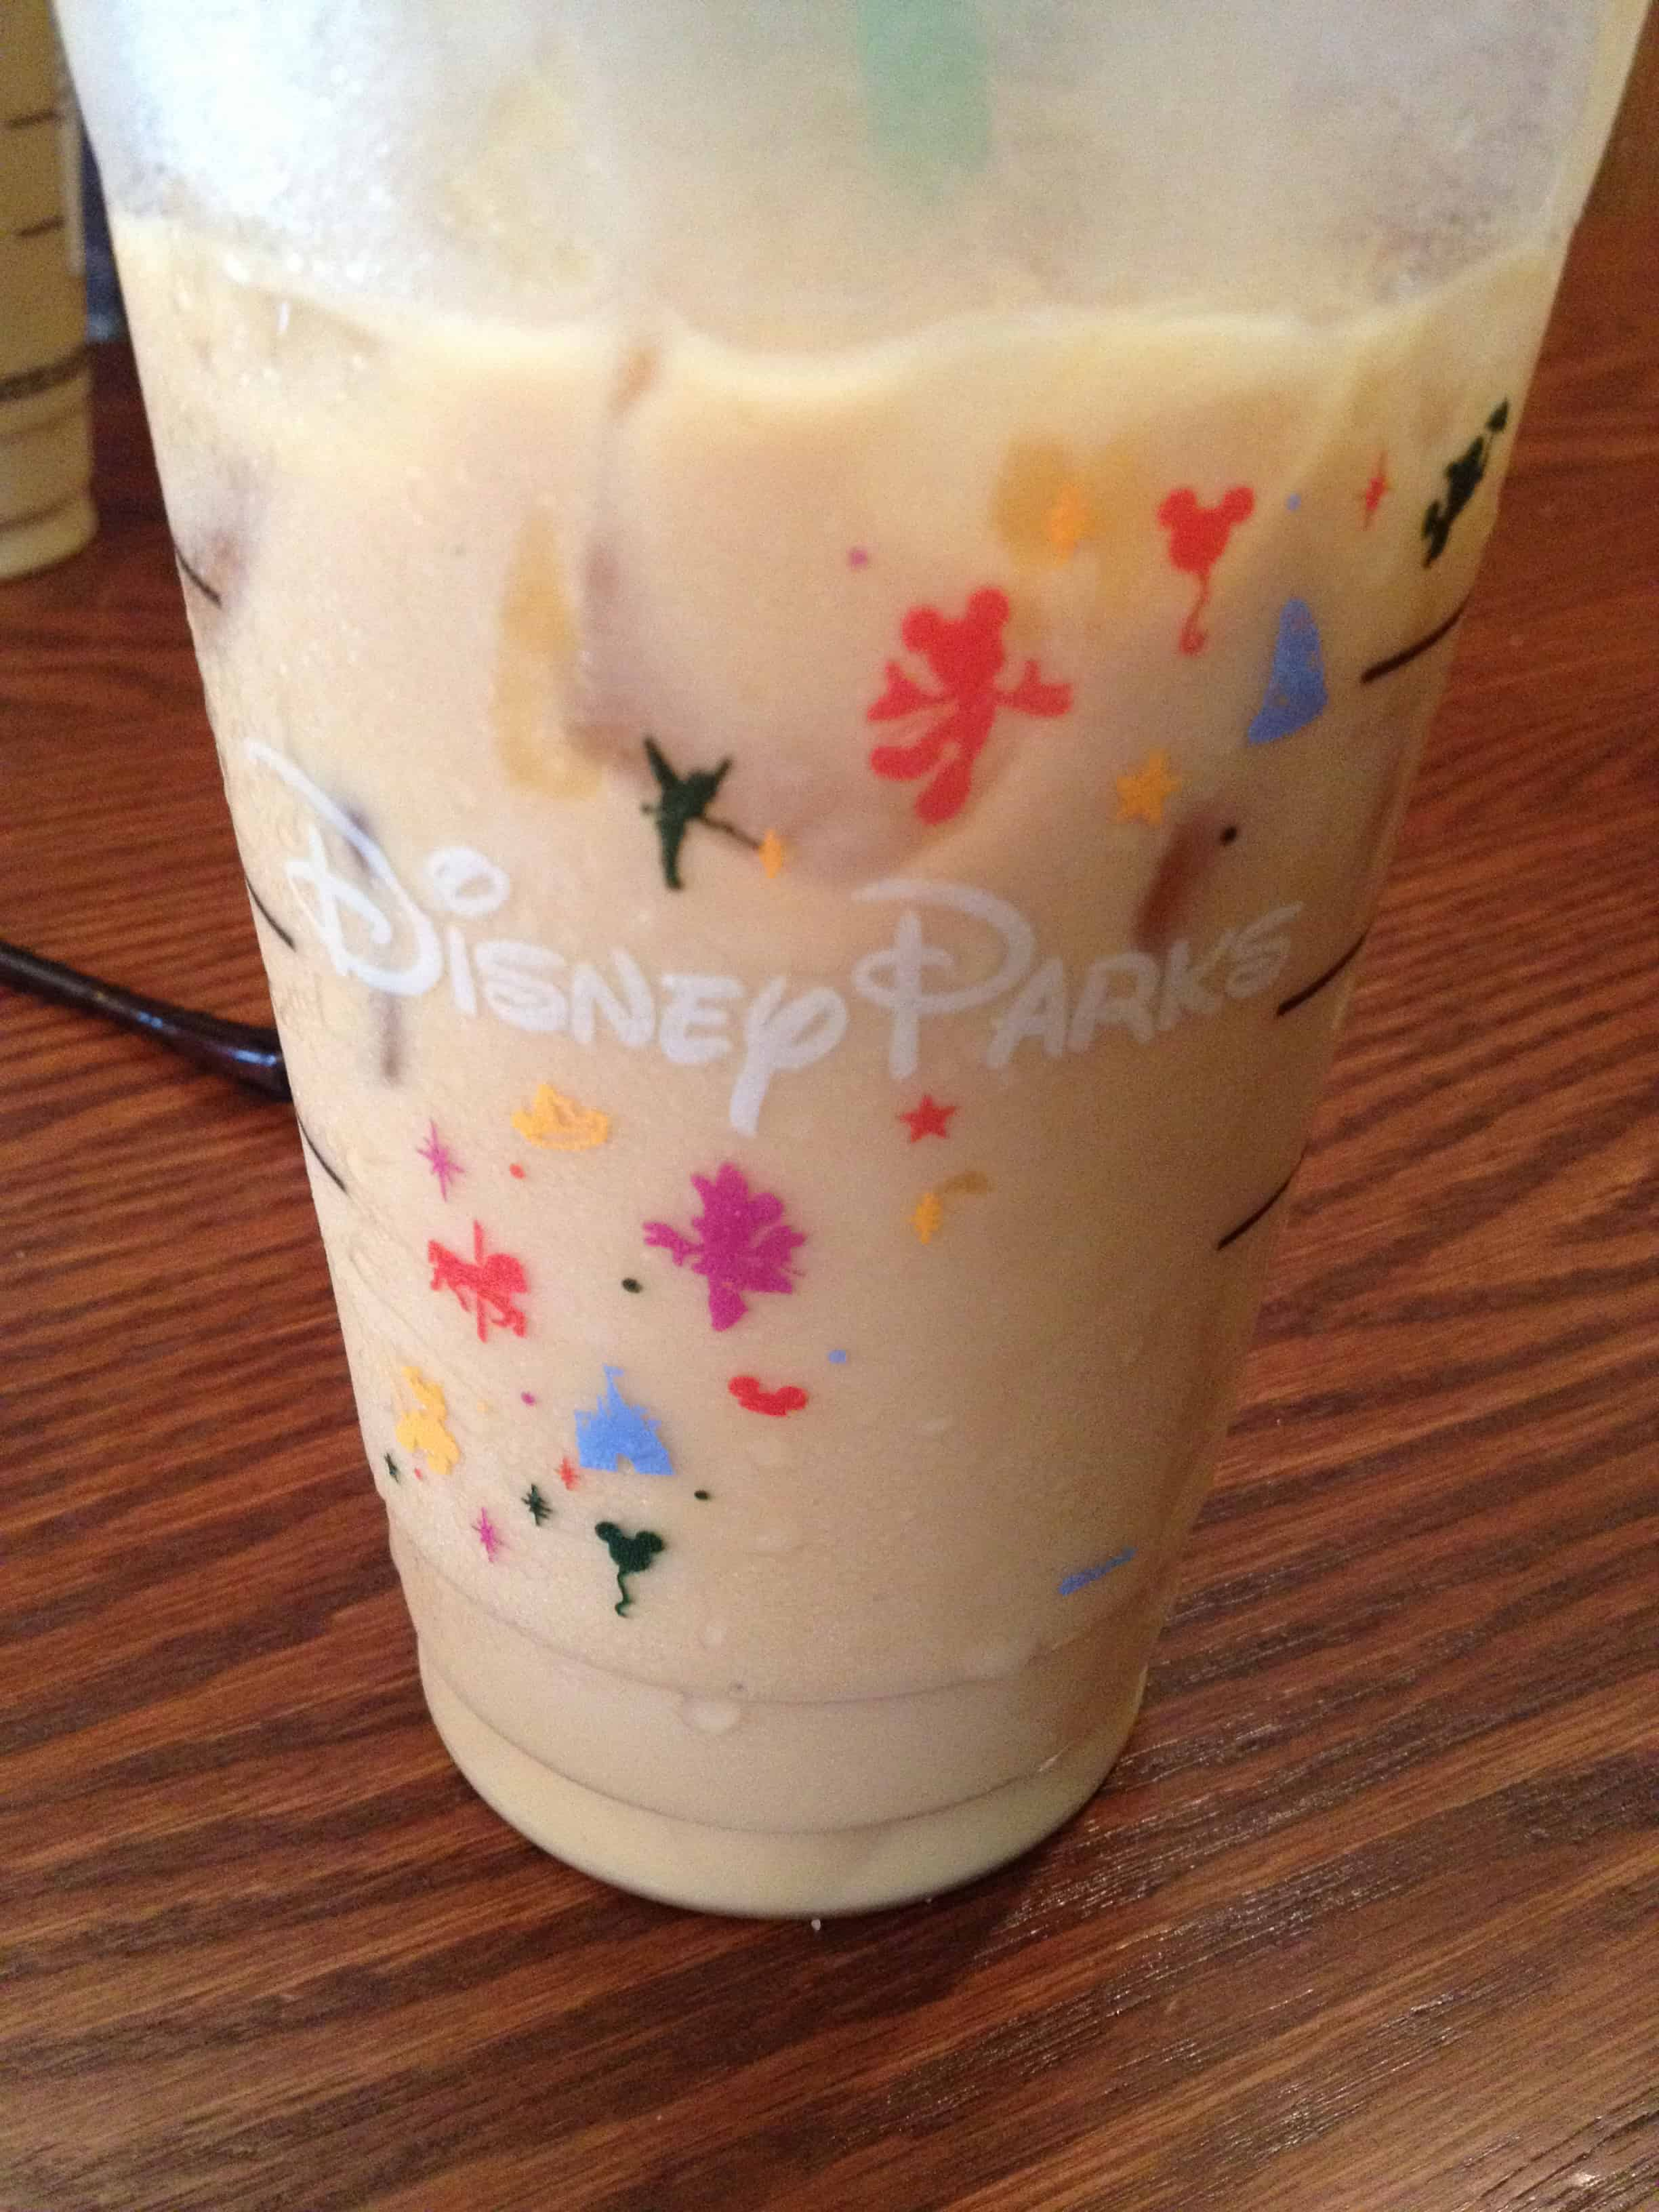 Confessions of a Former Barista: Thoughts on Starbucks in Disney Parks